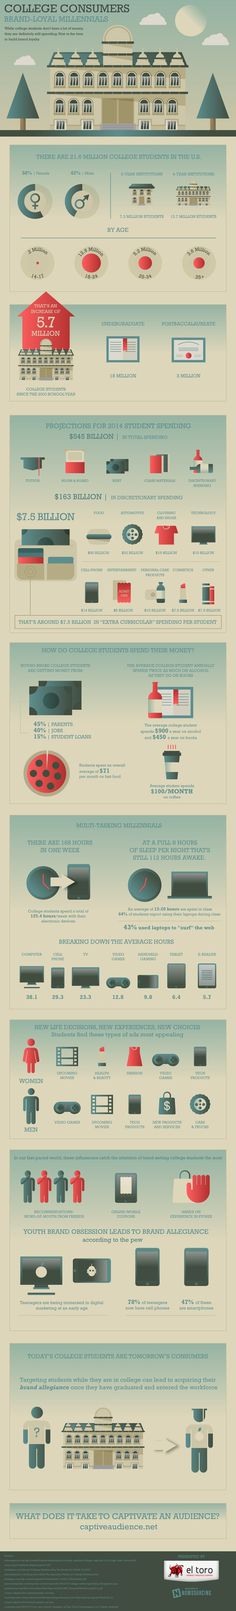 Want to know why your business should be courting college consumers?Check out this infographic for more.